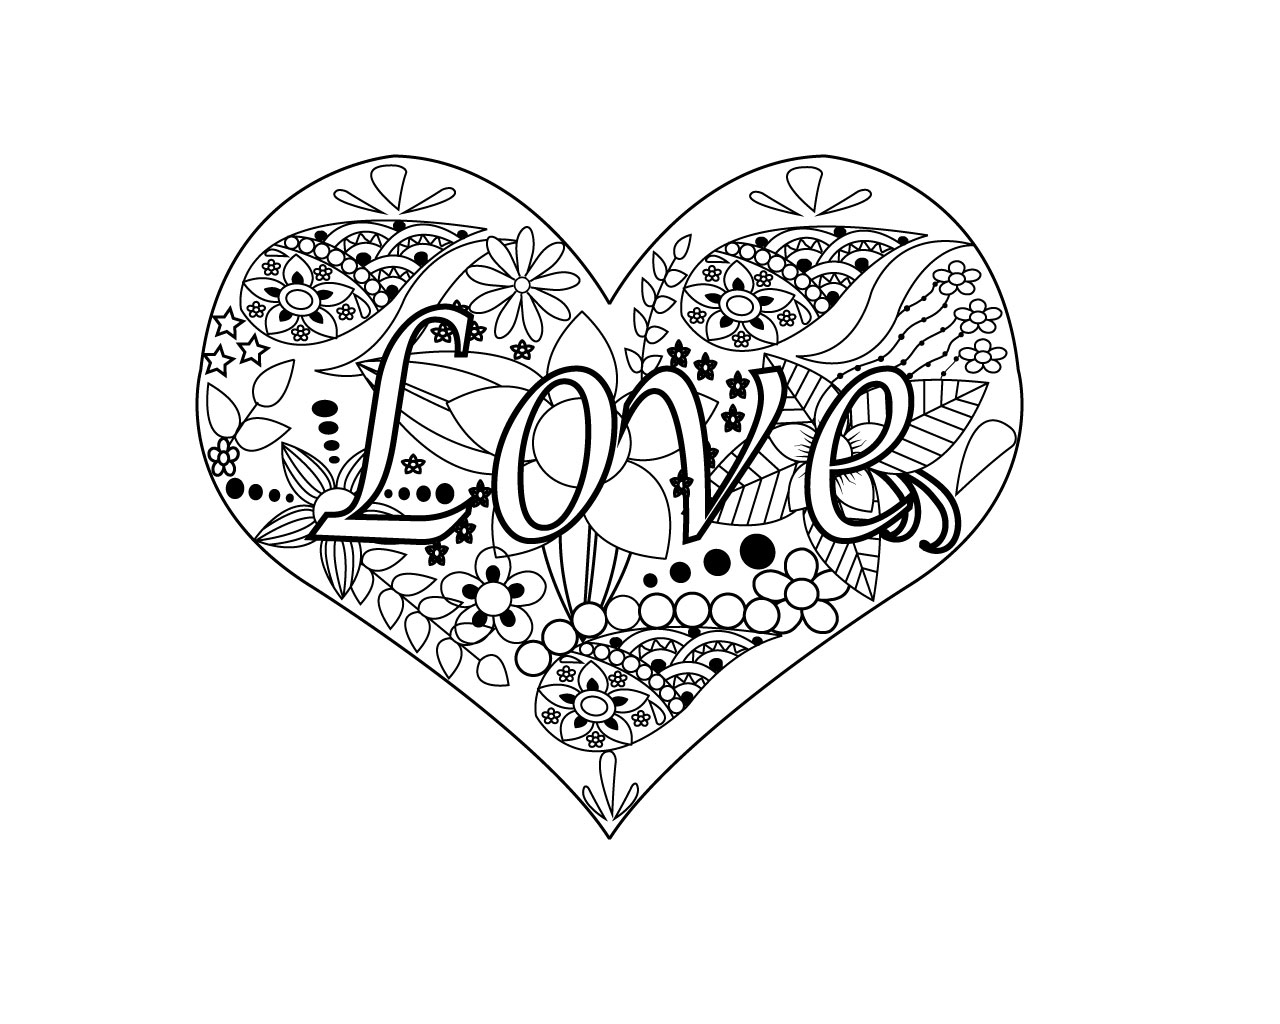 coloring love i love you hearts coloring page free printable coloring love coloring